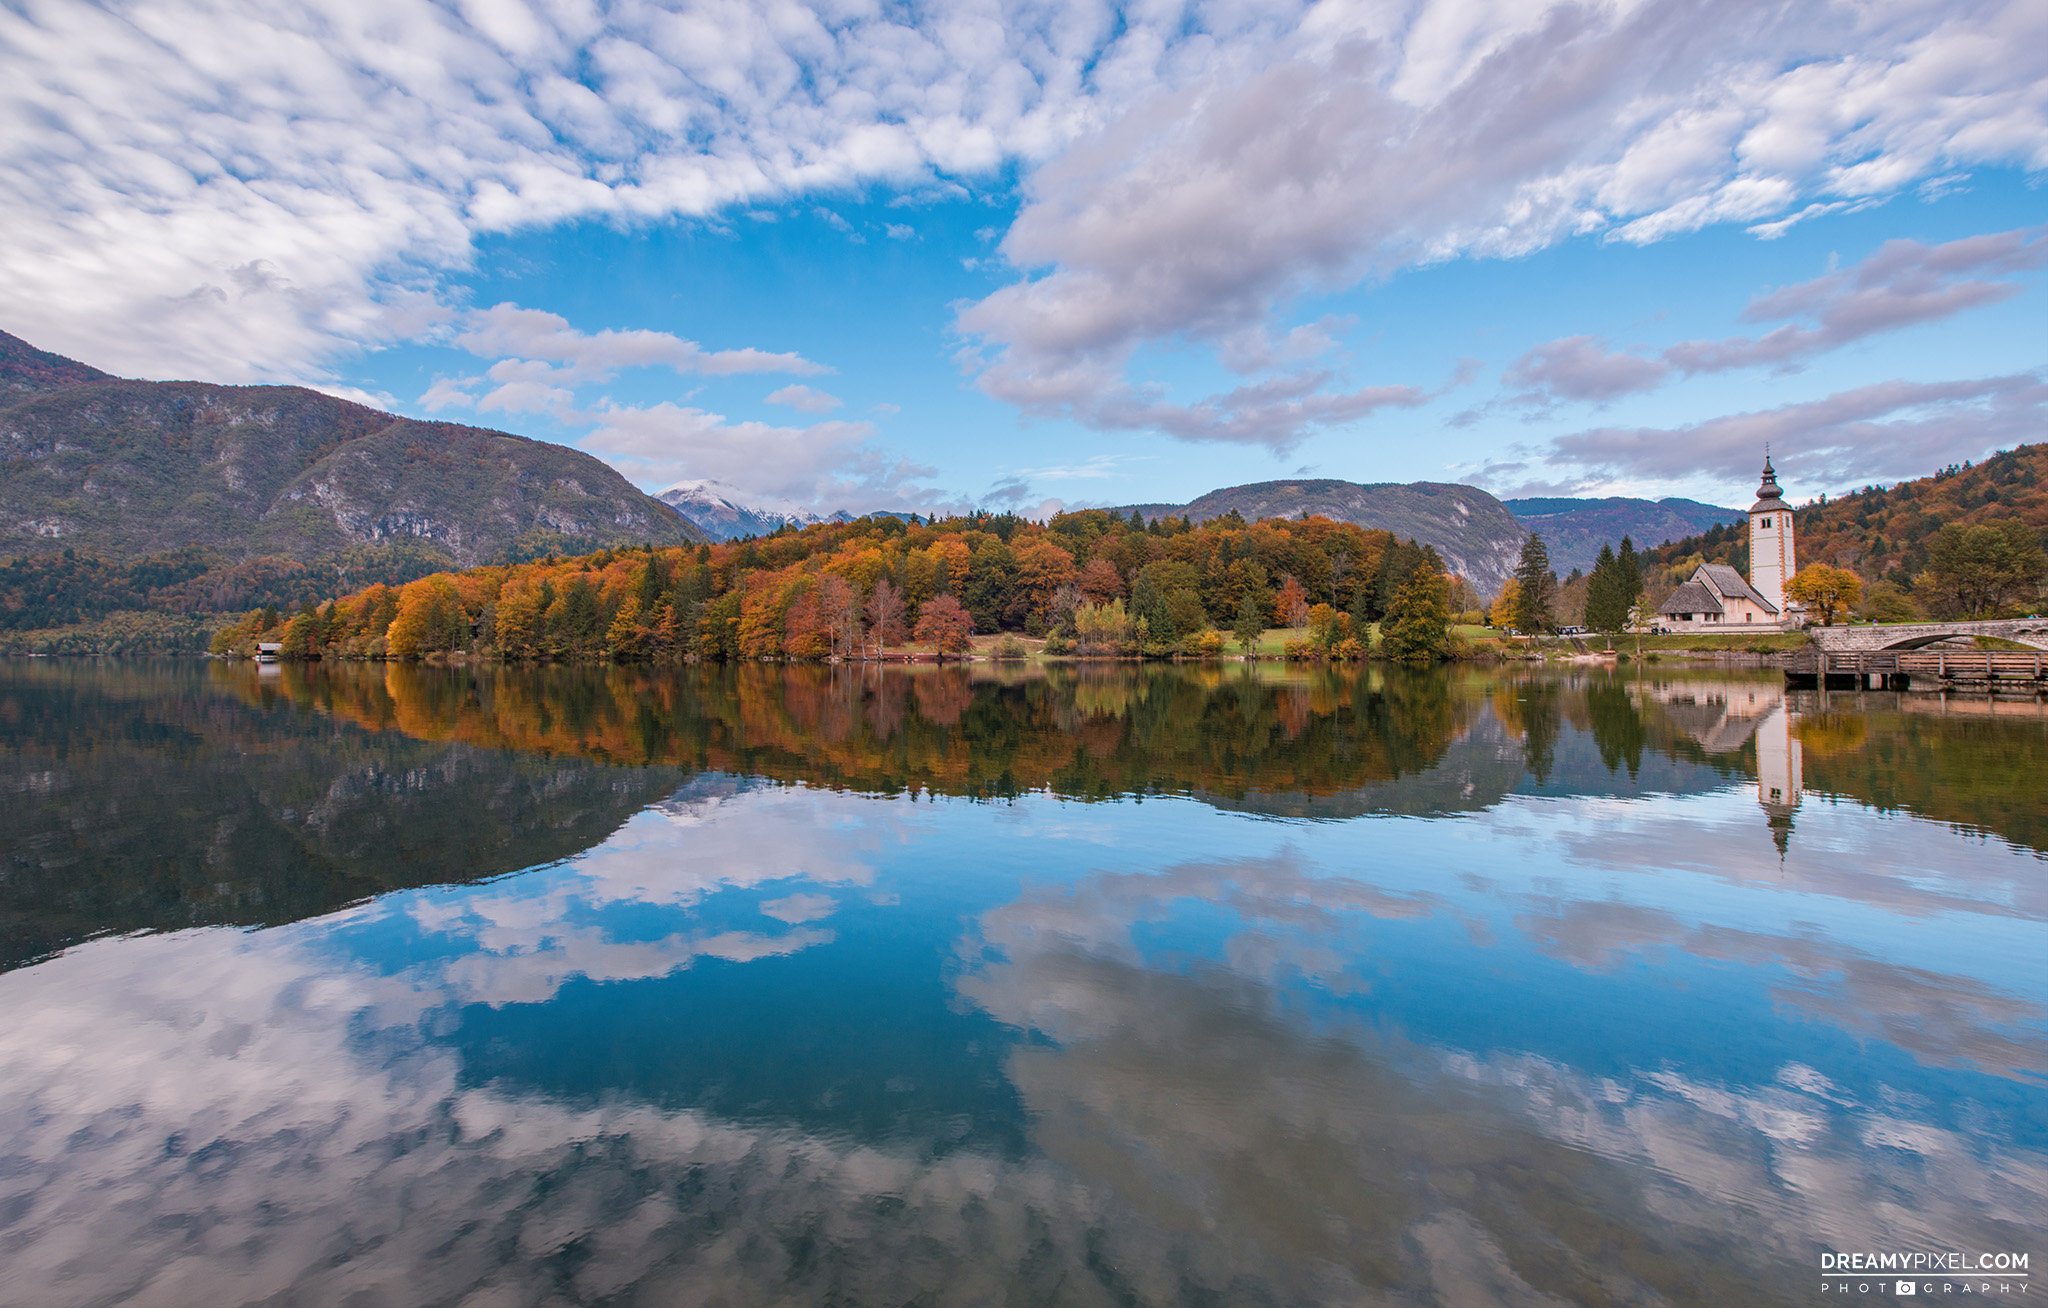 Beautiful autumn scene at lake Bohinj